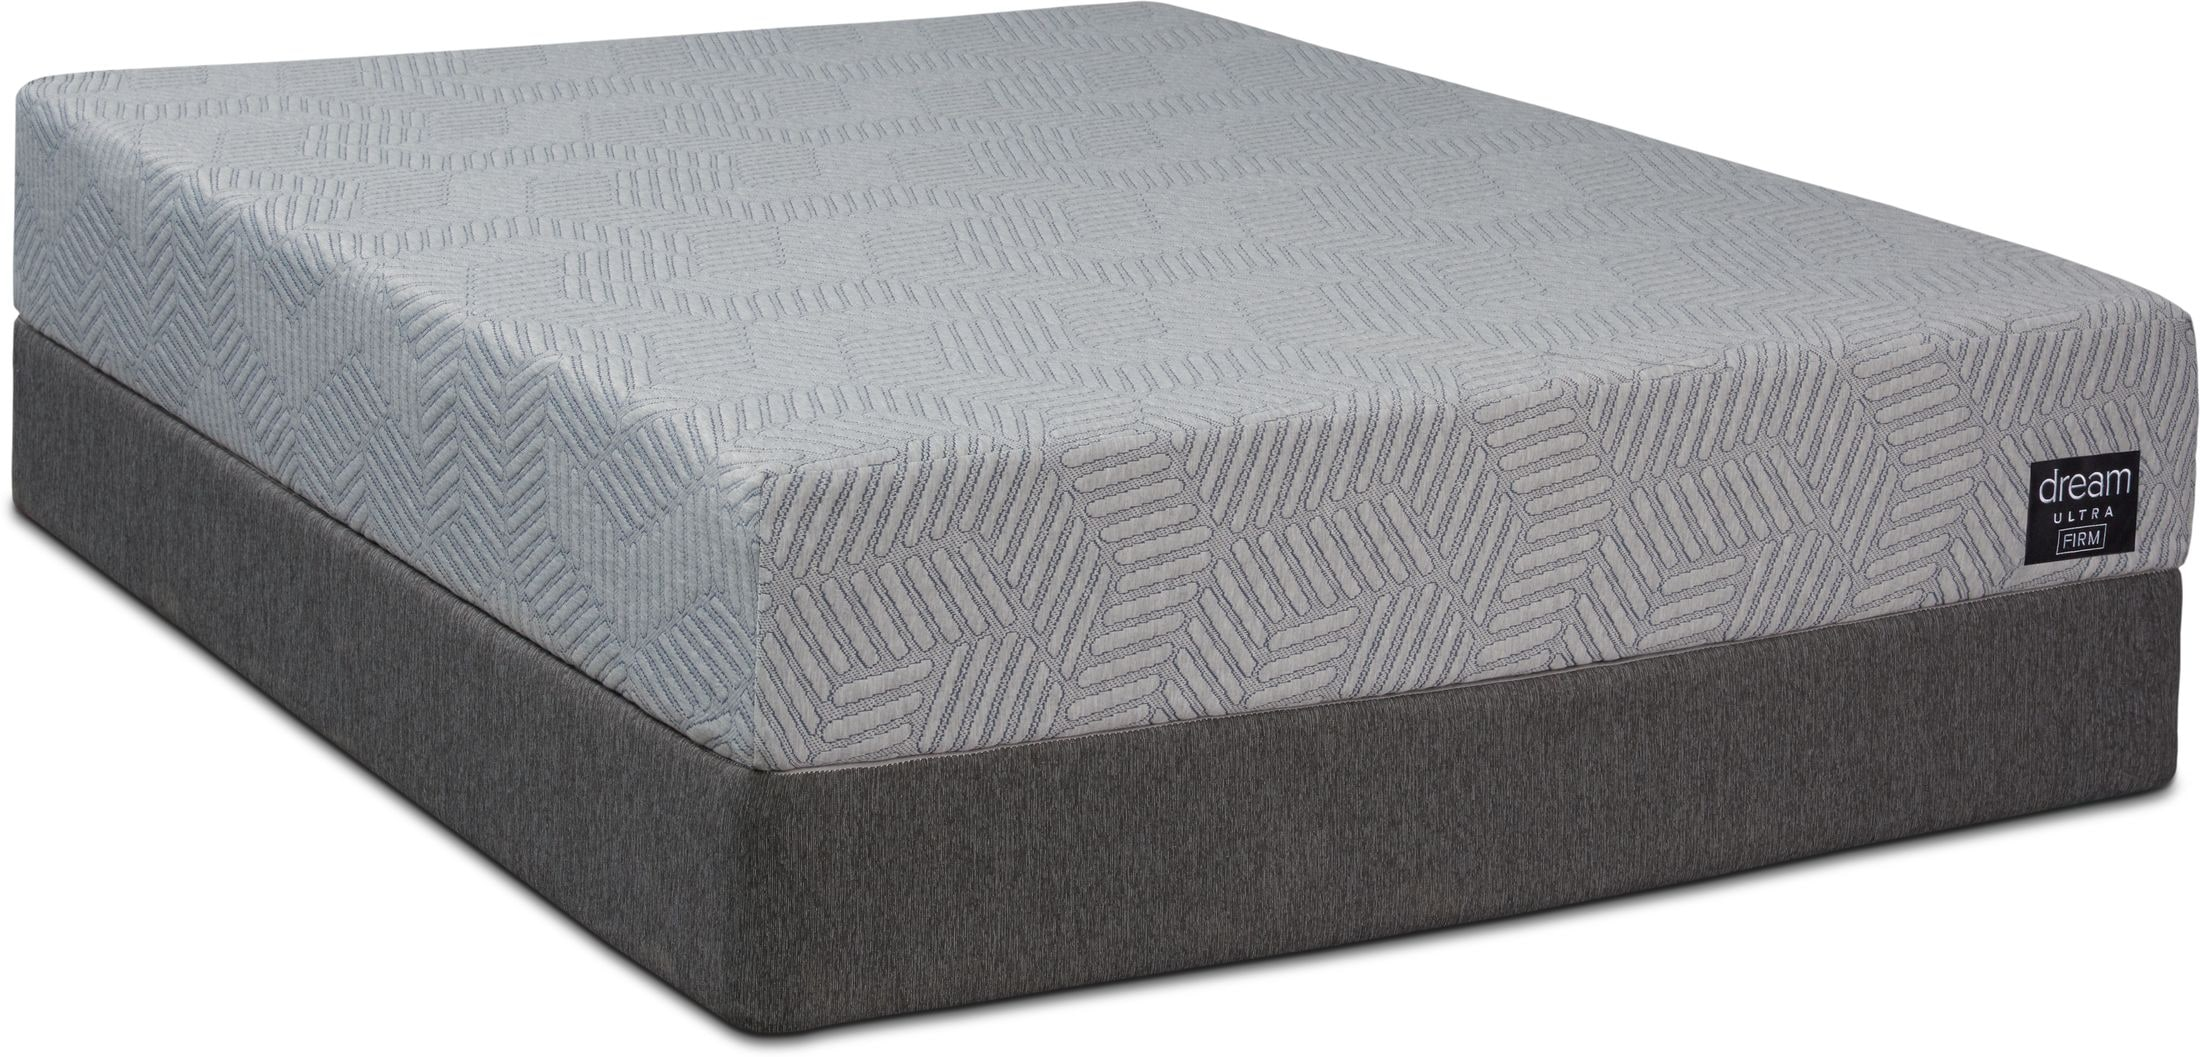 Mattresses and Bedding - Dream-In-A-Box Ultra Firm Mattress